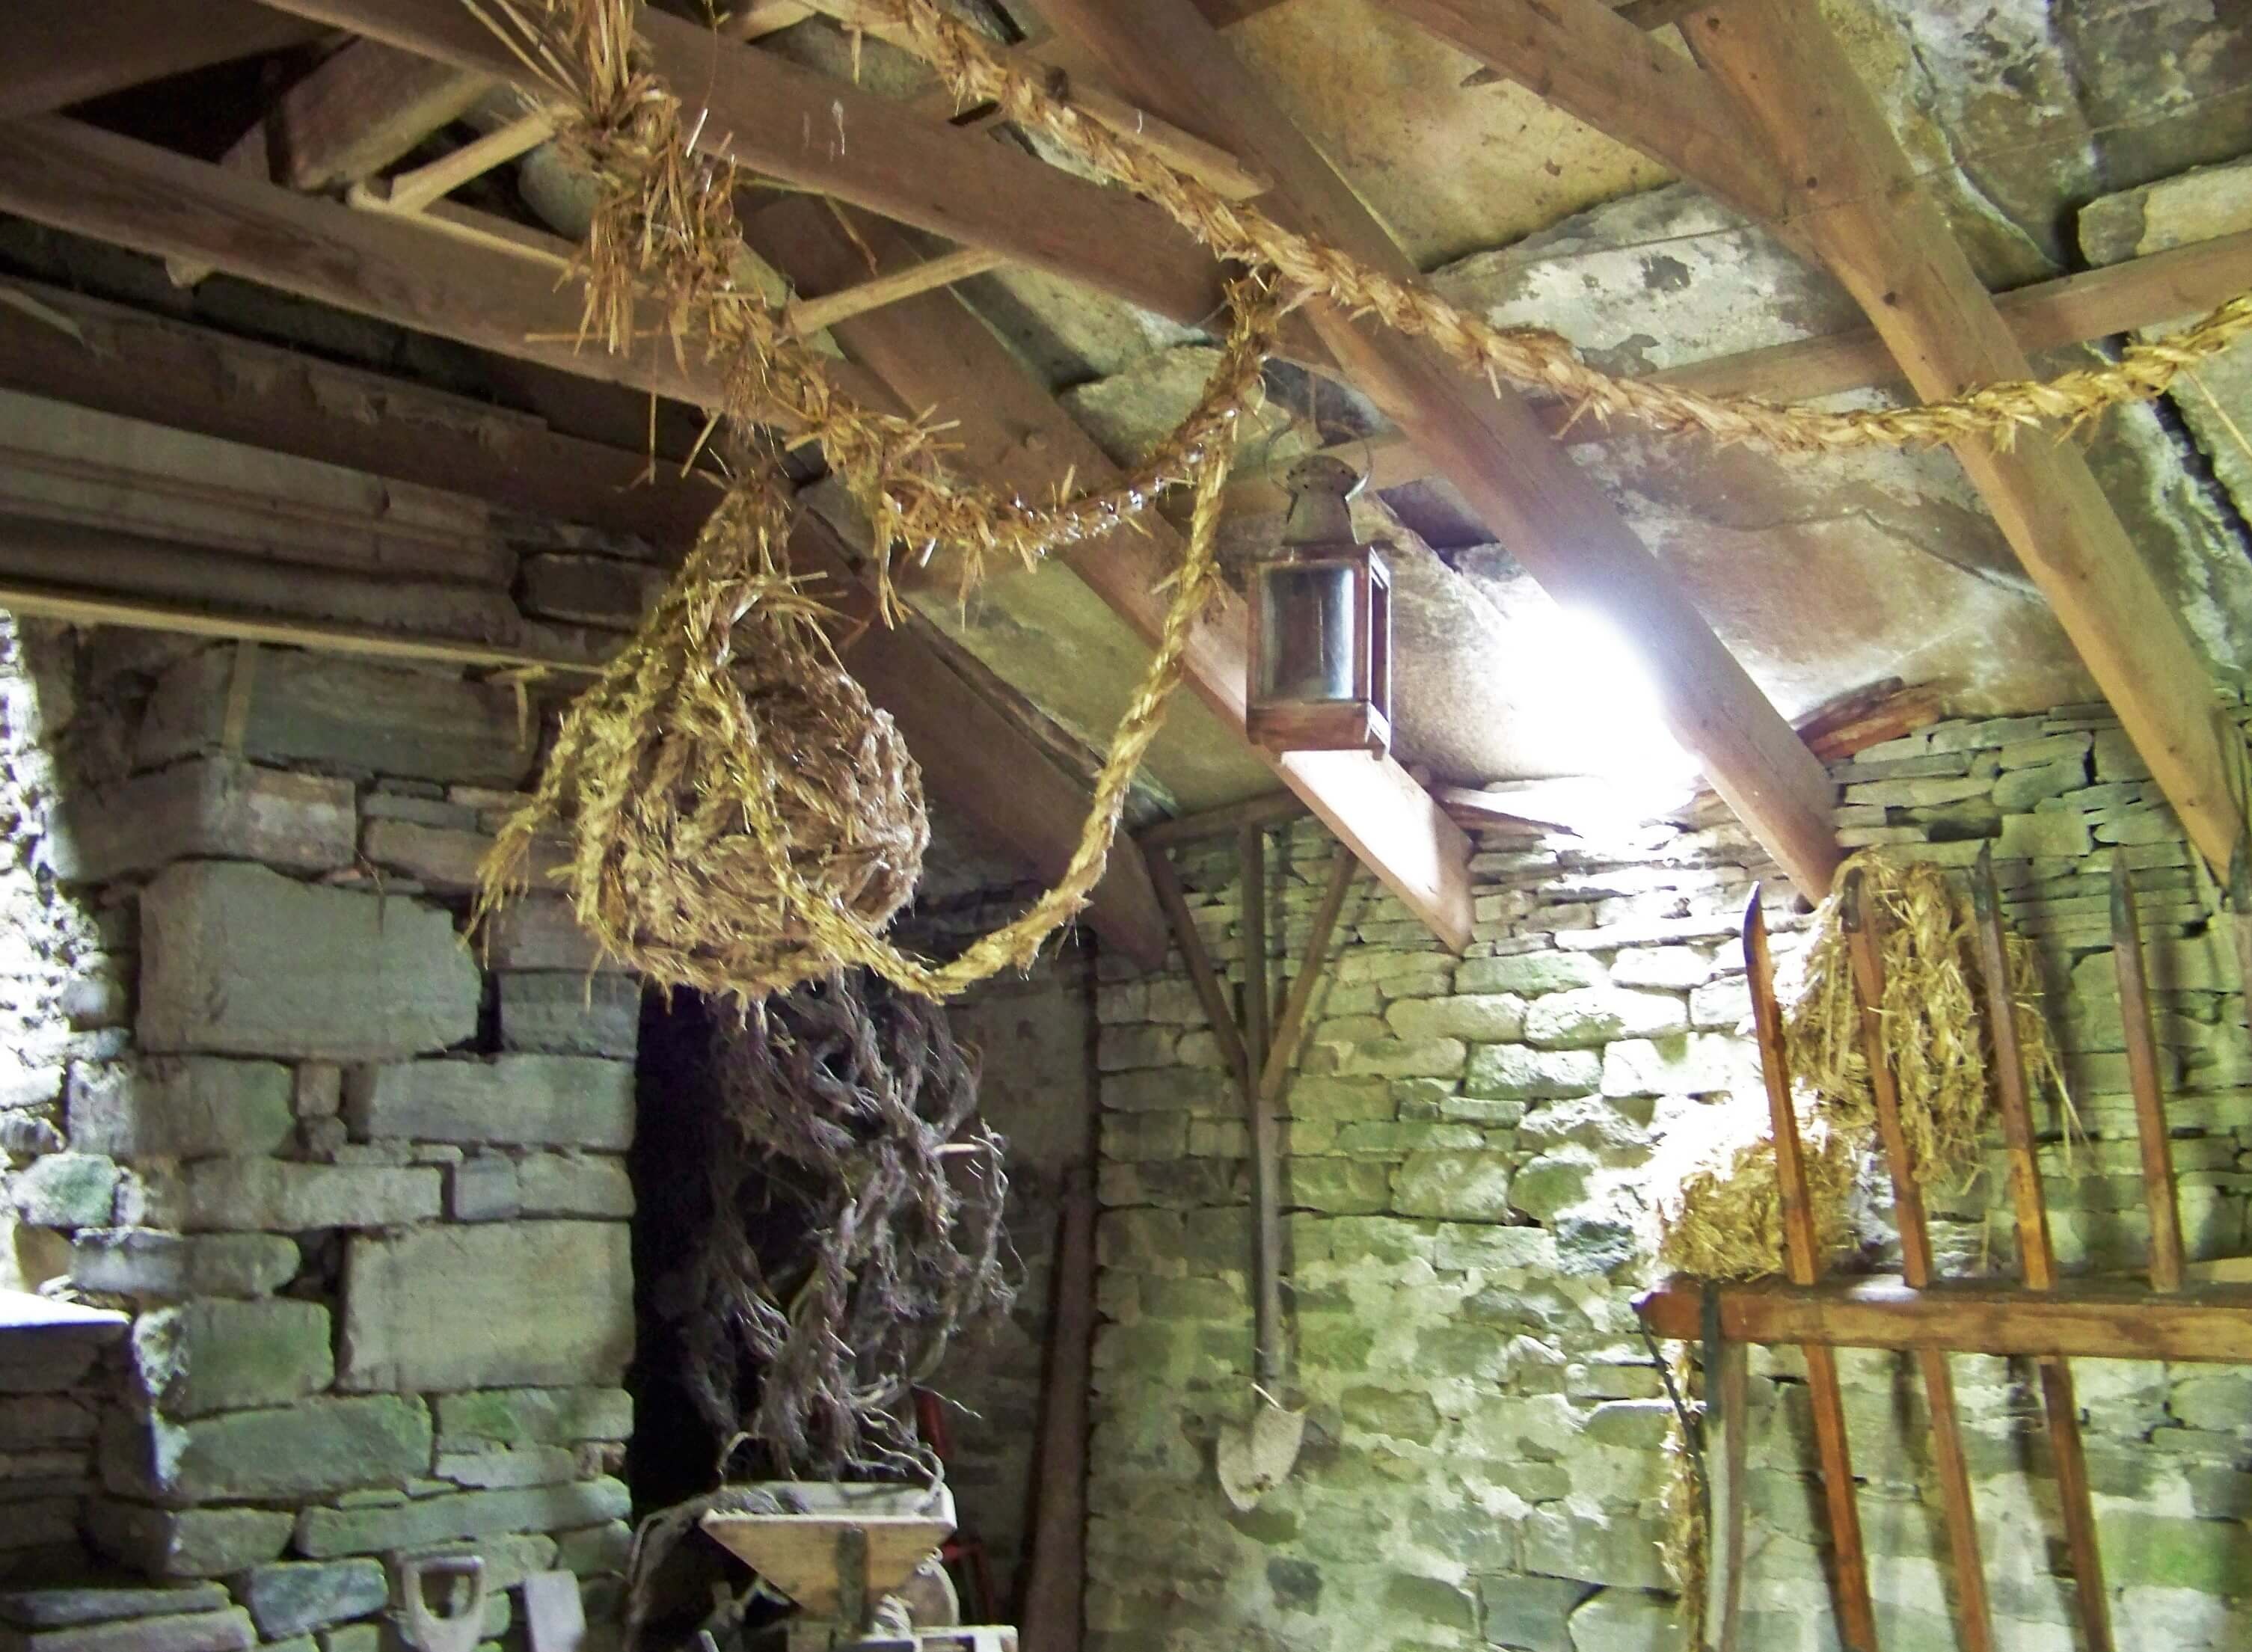 Simmans rope, Orkney Islands, Scotland, UK. #Orkneyology.com